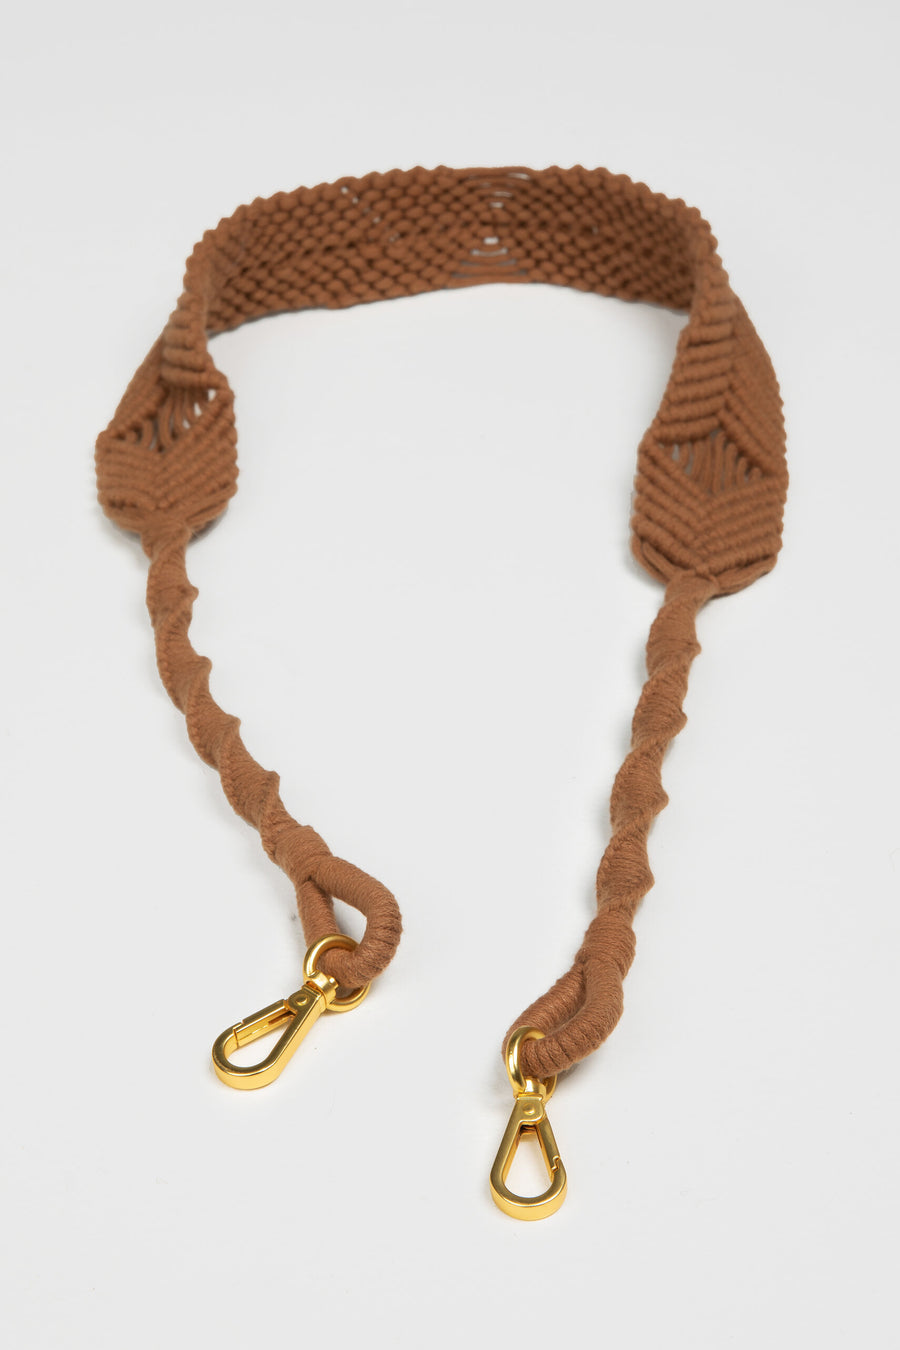 Lanamara - Noa Handmade Macrame Strap in Cinnamon Brown Cotton  with Gold Clips